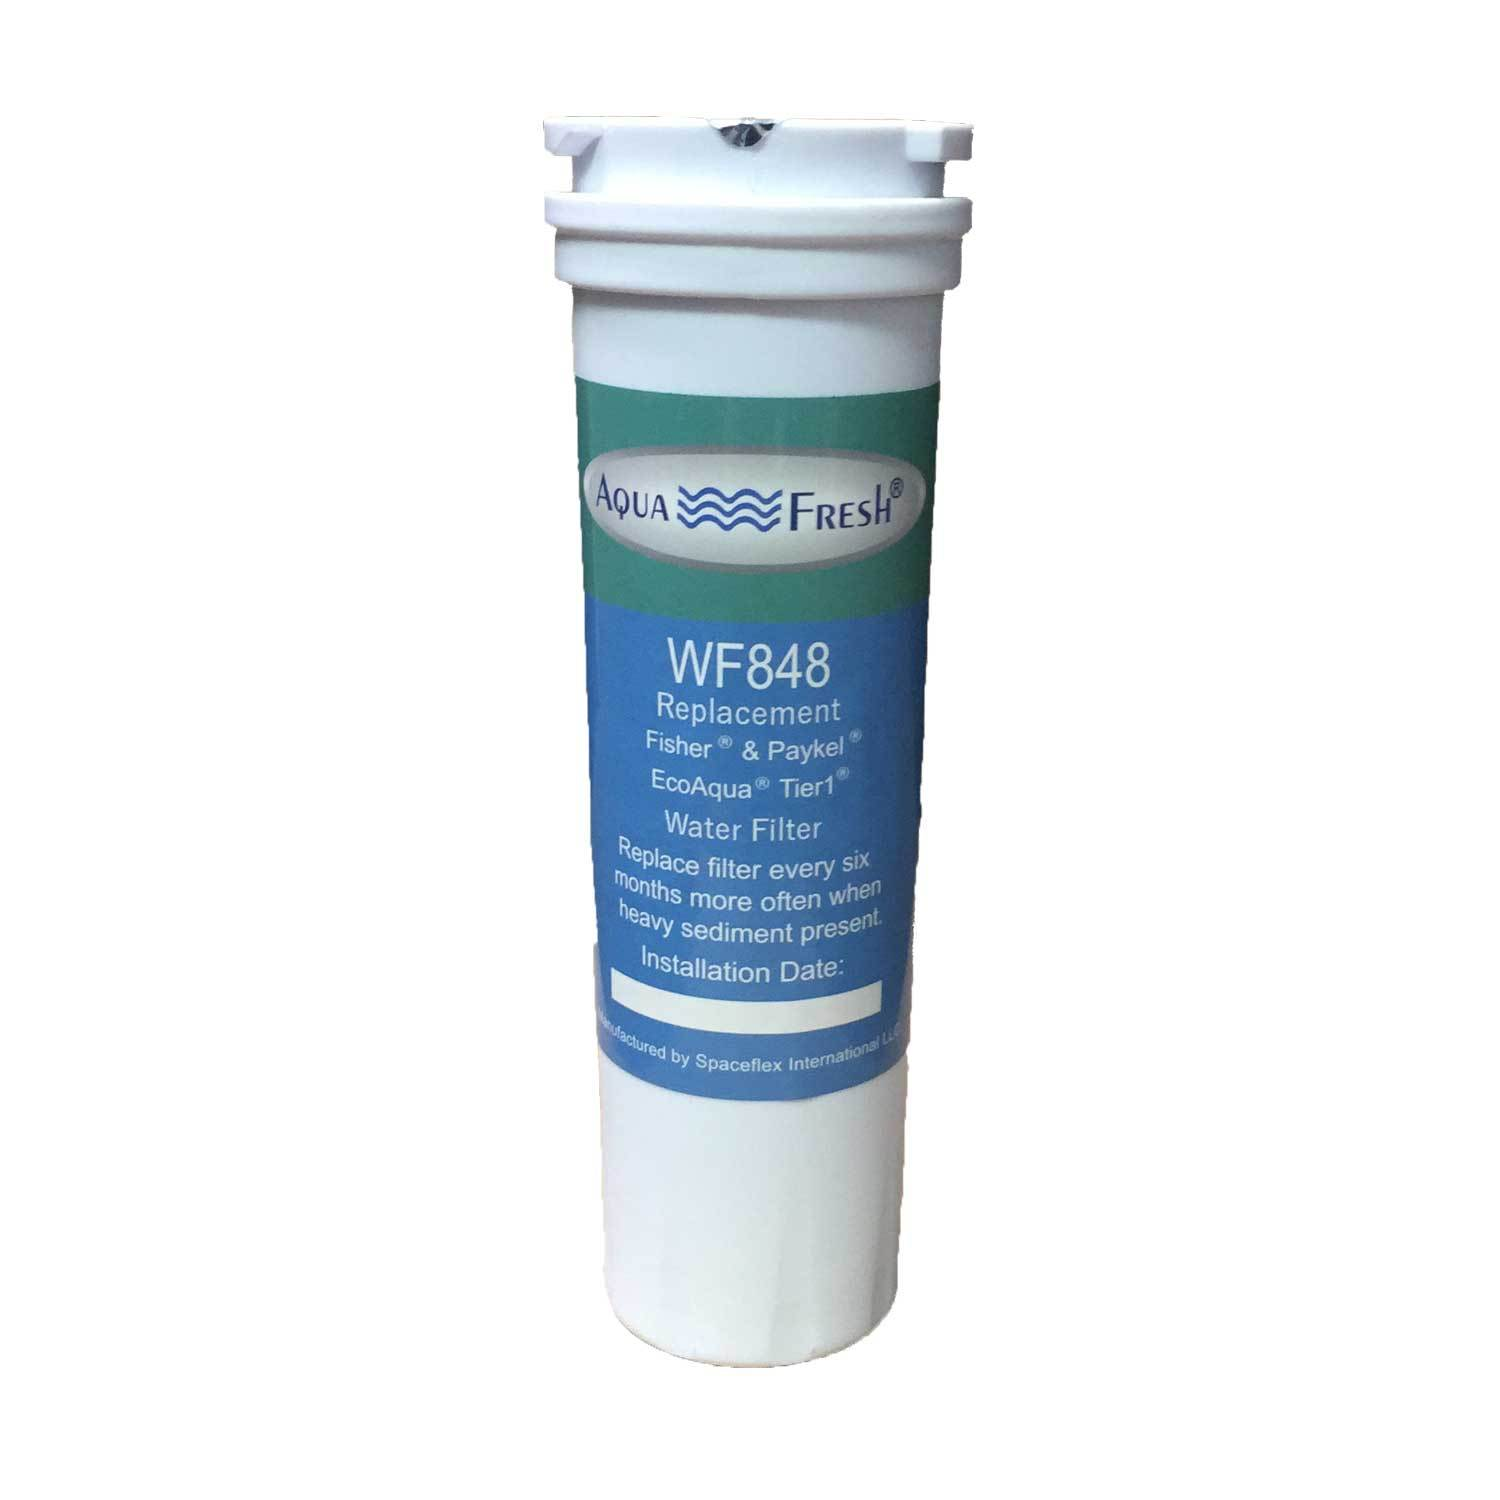 Aqua Fresh WF848 Replacement for Fisher & Paykel 836848 Refrigerator Water Filter